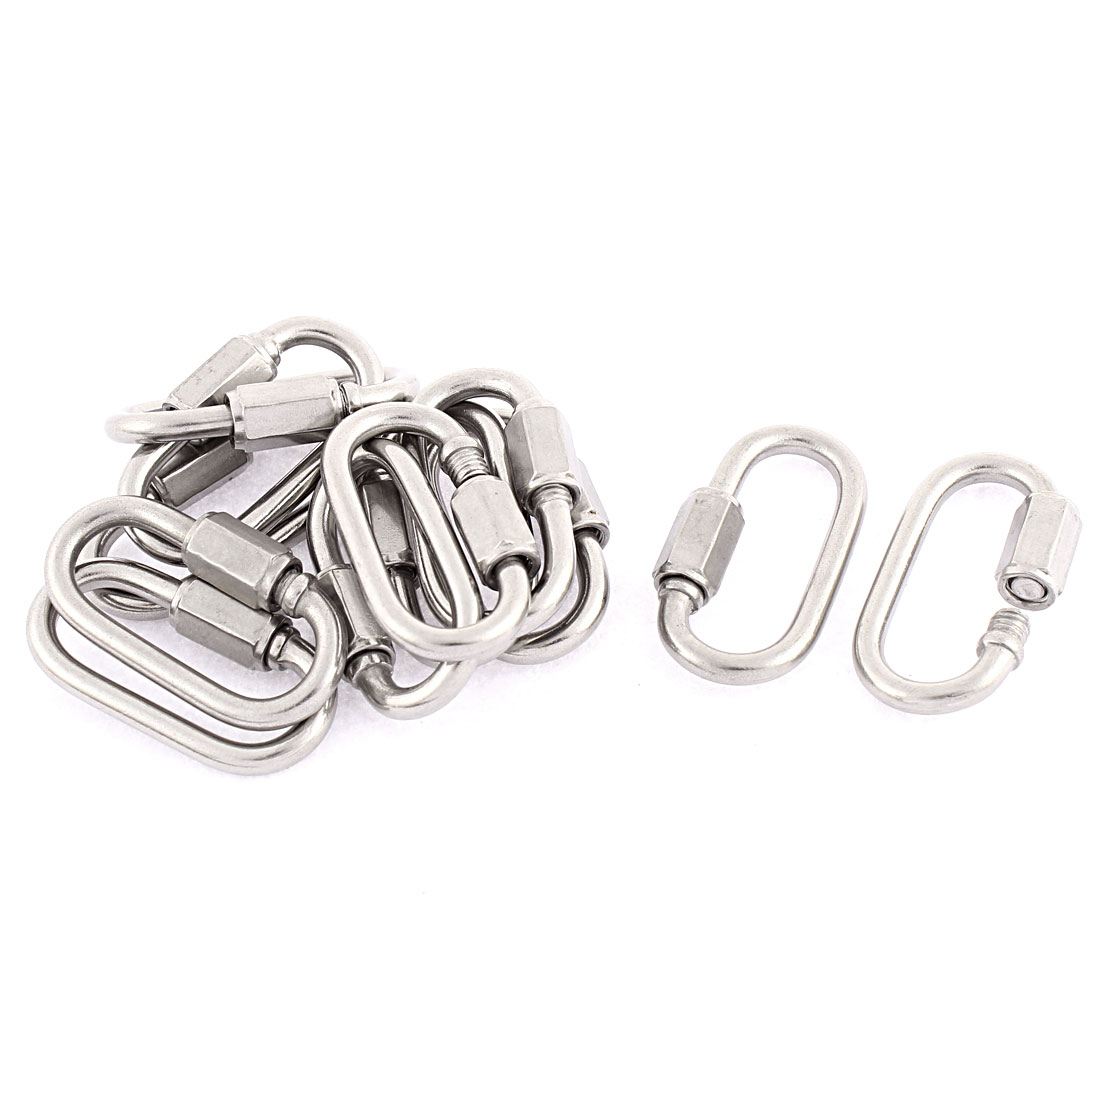 M3.5 Thickness Multifunctional Stainless Steel Quick Links Carabiners 12pcs